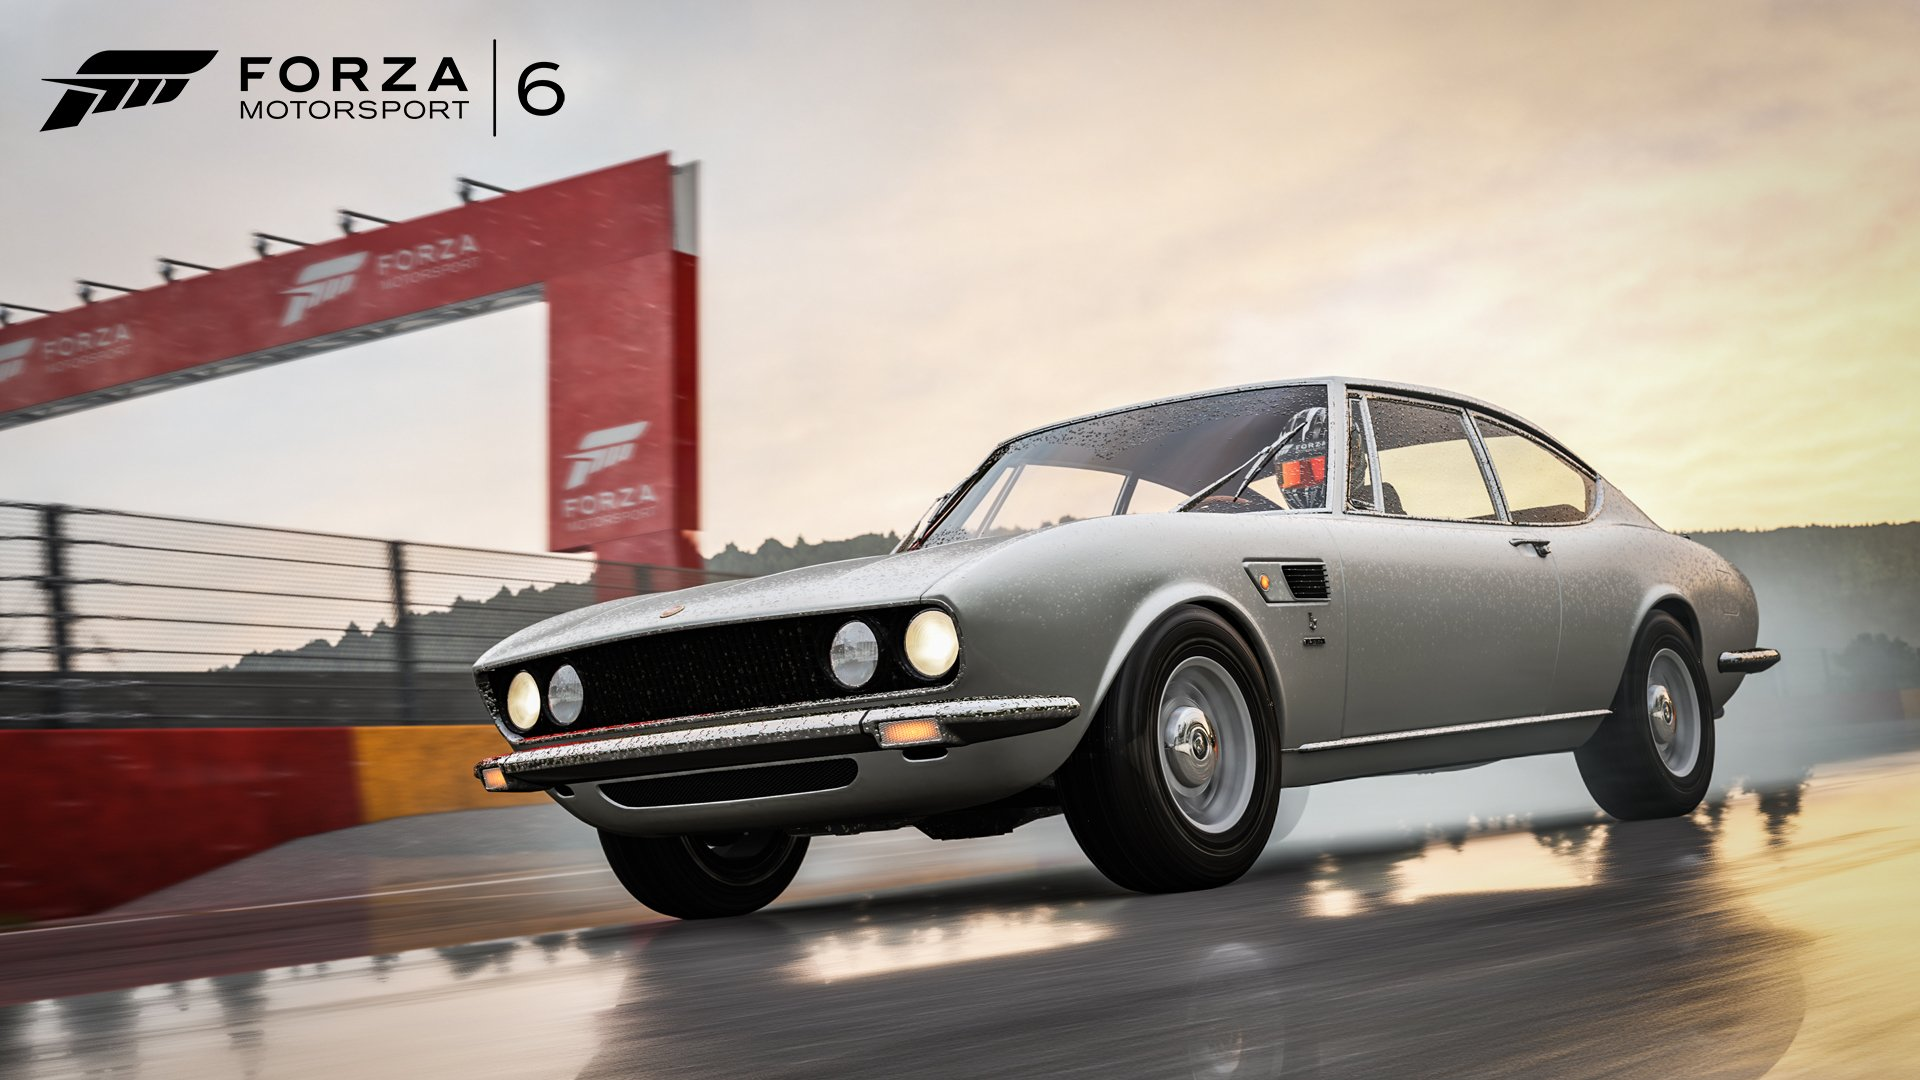 Forza Motorsport 6 1969 Fiat Dino 2.4 Coupe